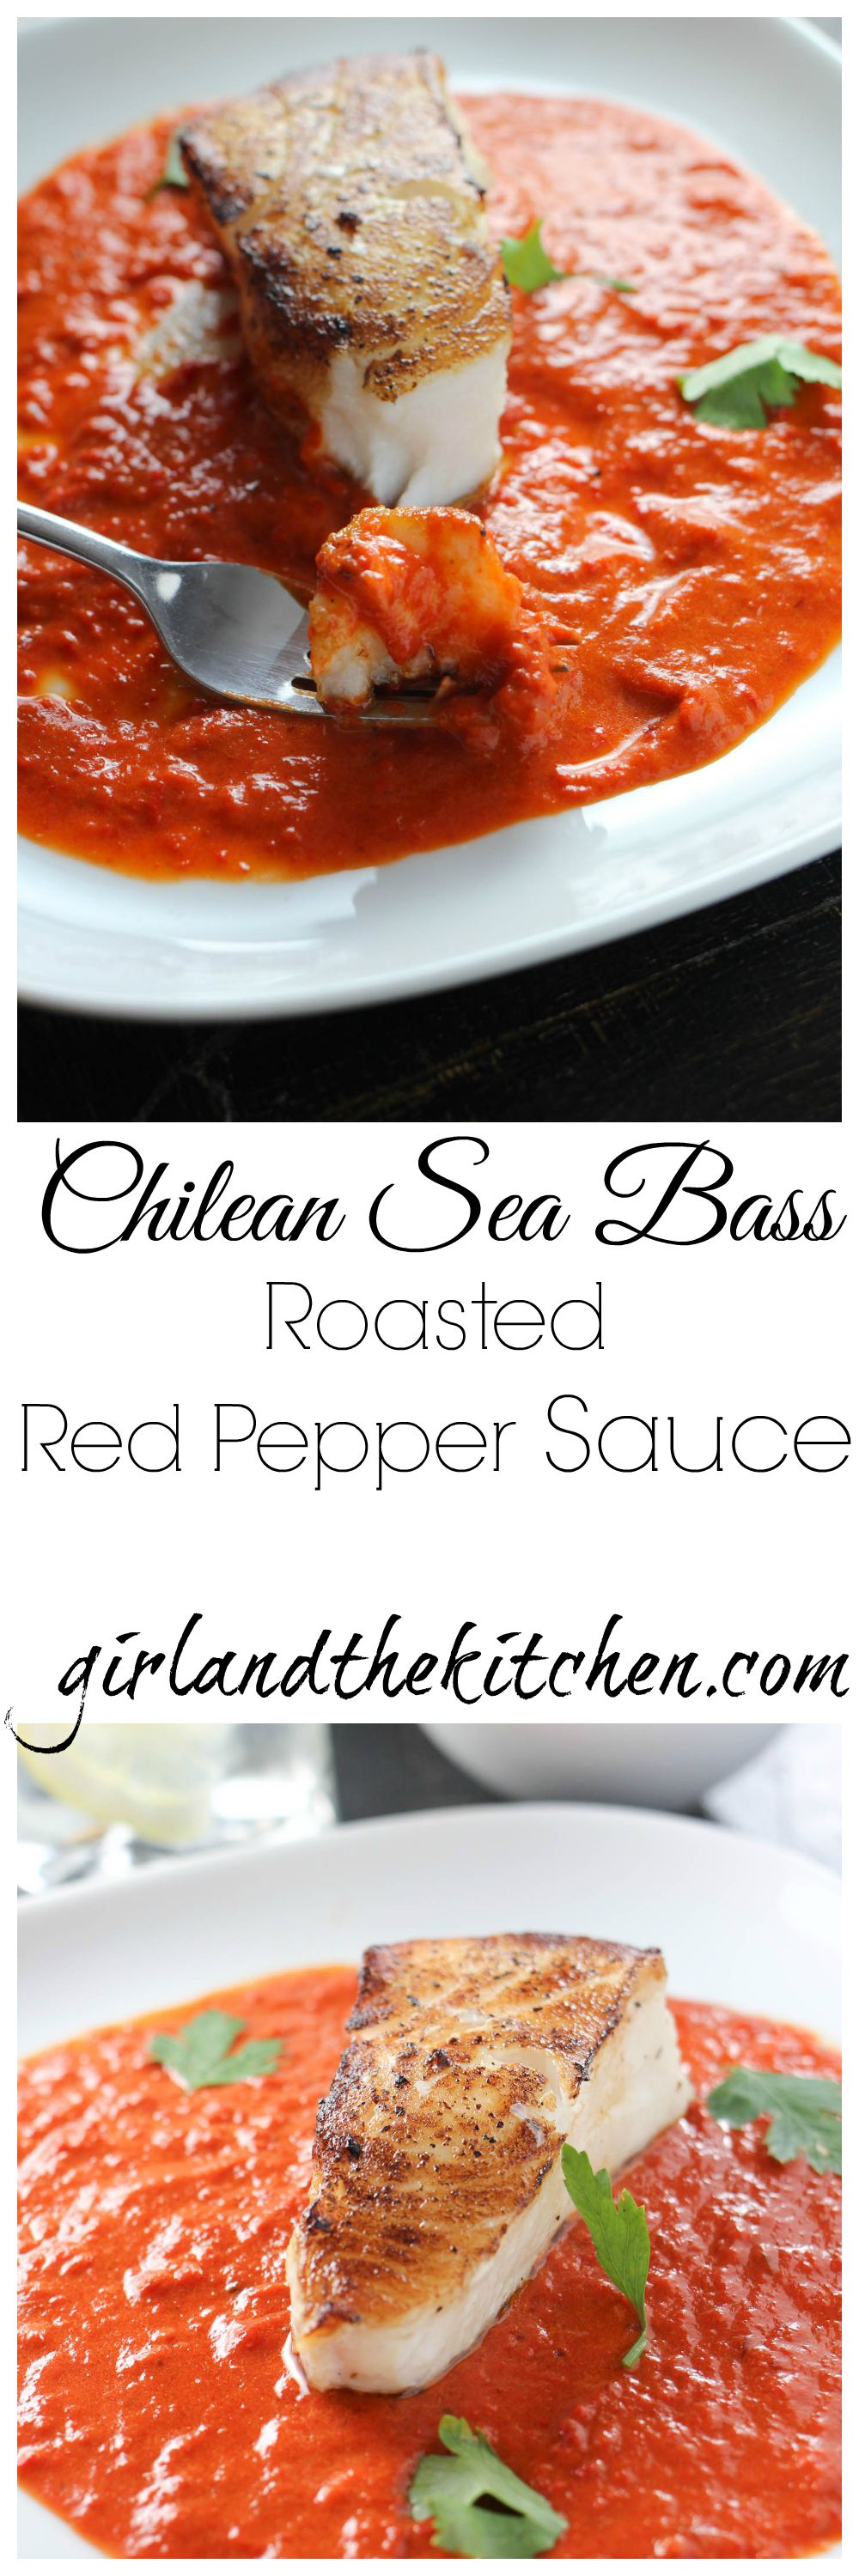 A perfectly seared Chilean sea bass with a spicy red pepper sauce.